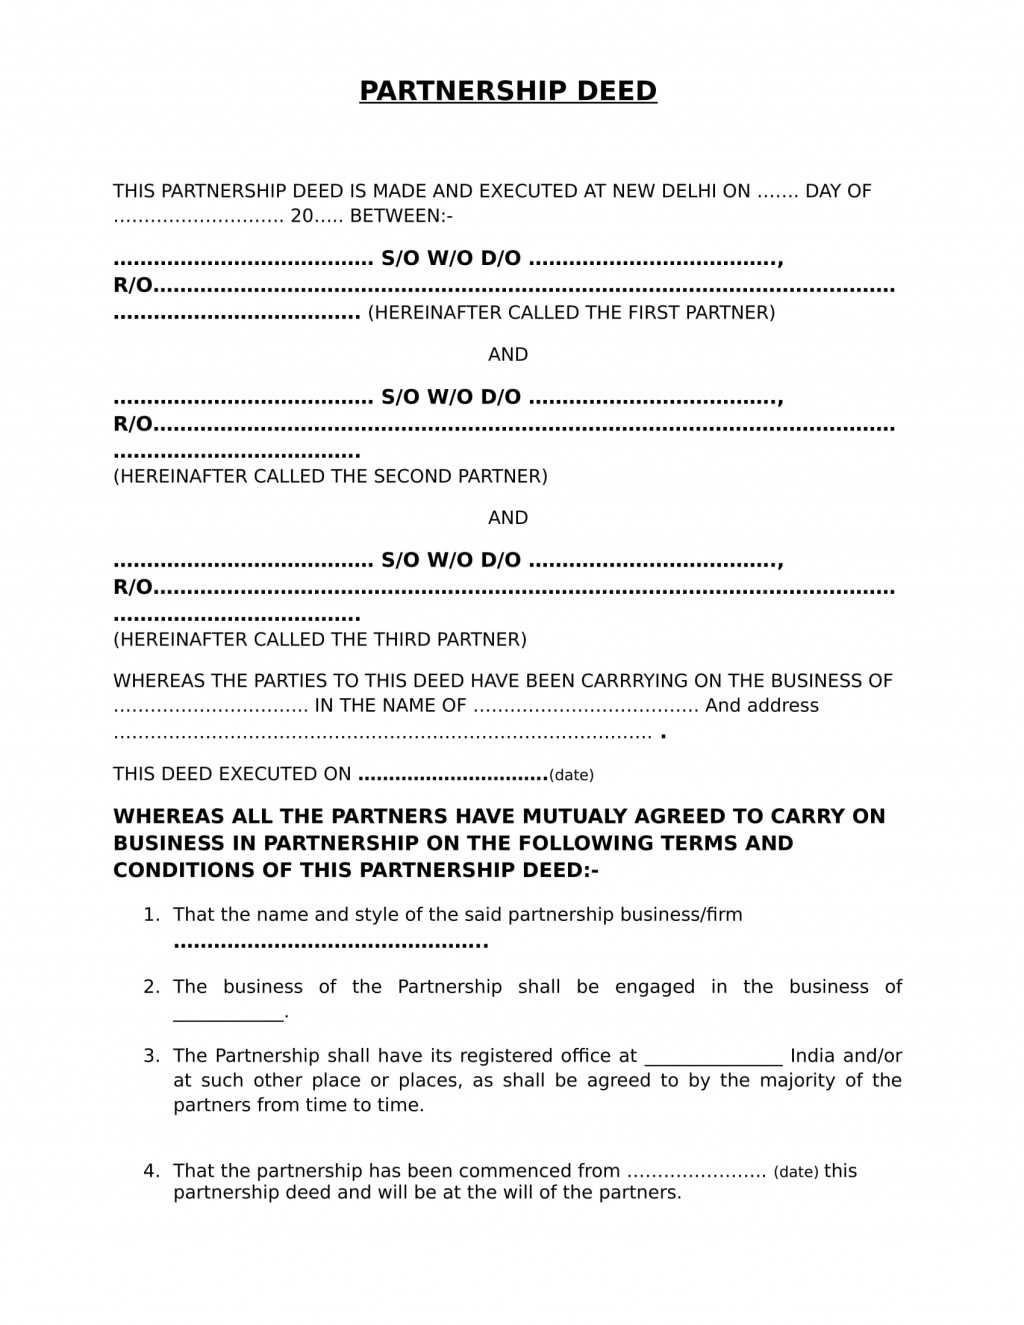 Partnership deed form edrafter sample of partnership deed thecheapjerseys Image collections